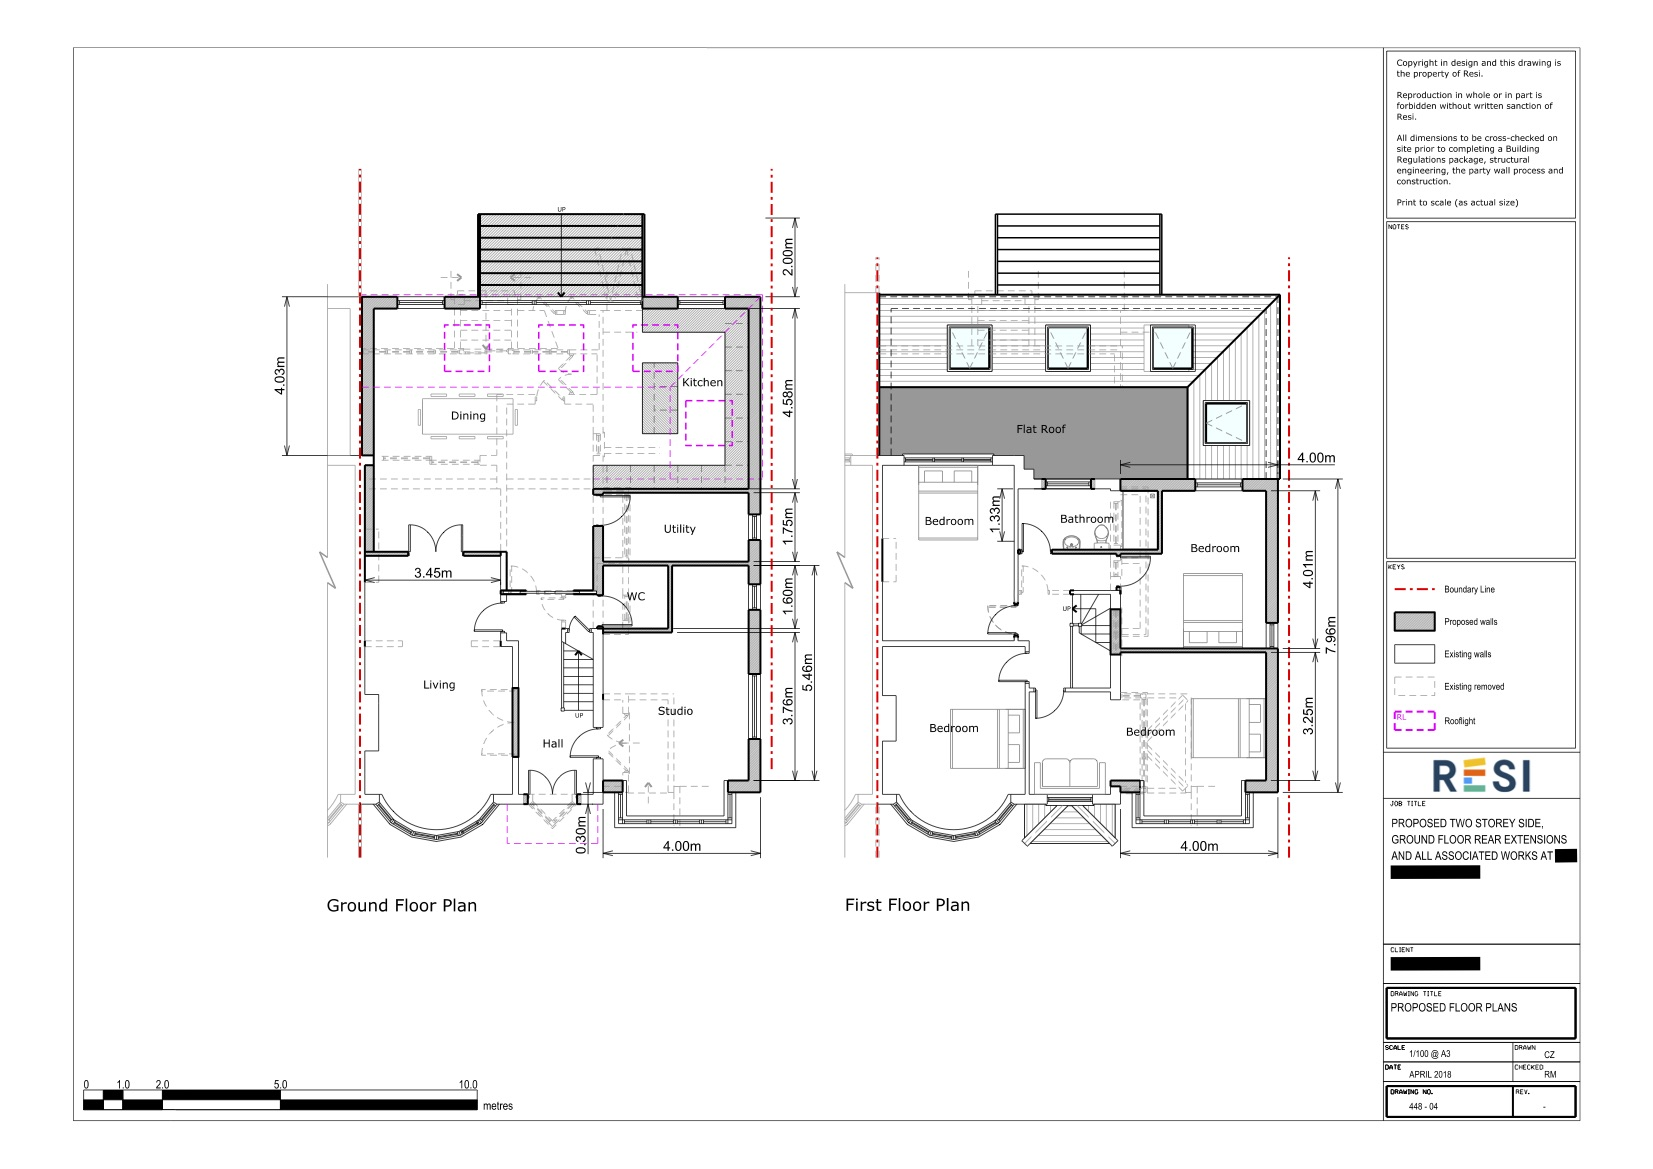 Architectural drawings   ground and first floor plans